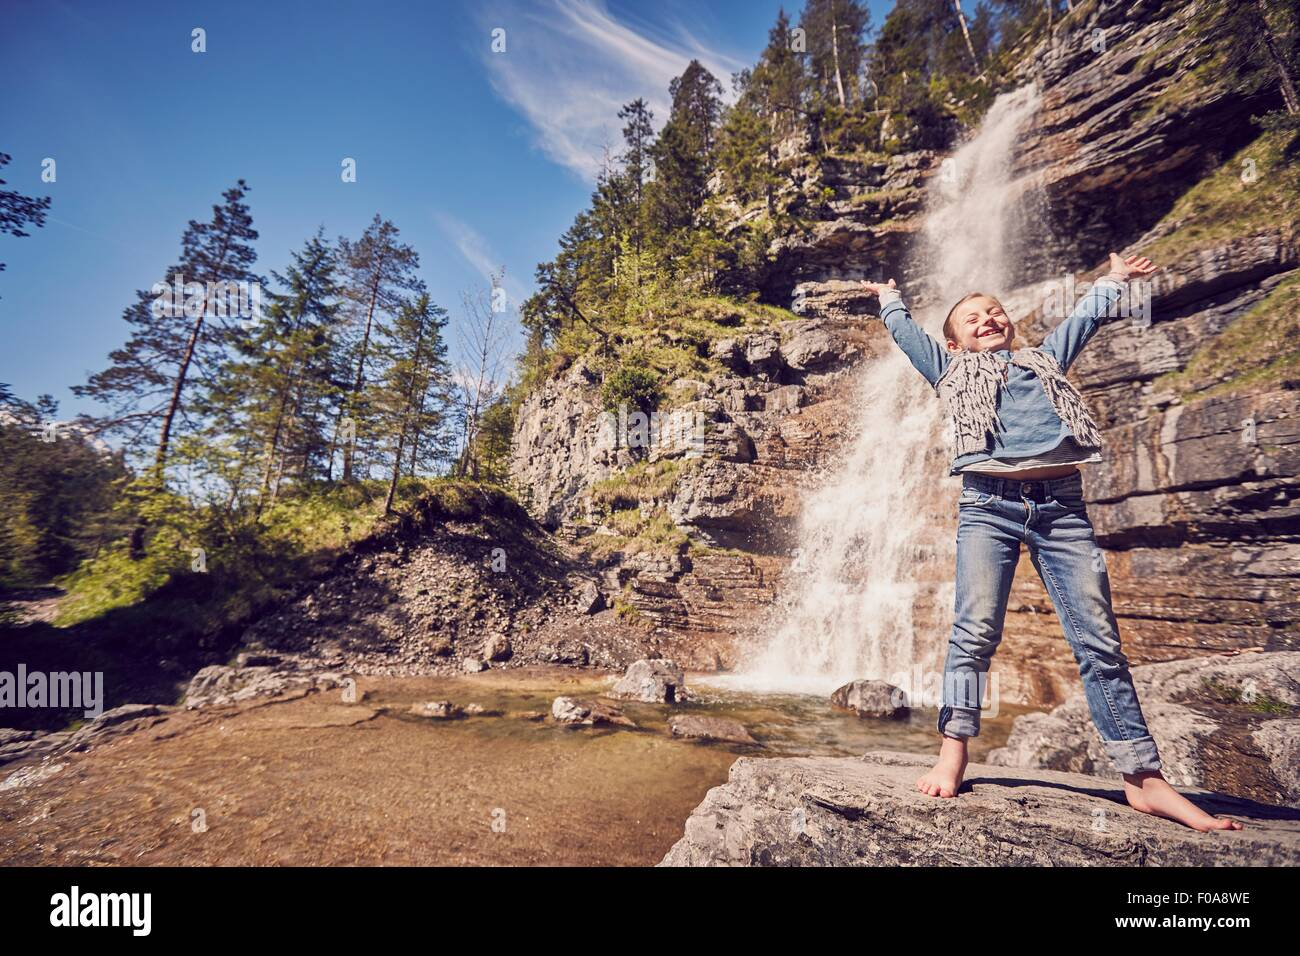 Young girl standing on rock, beside waterfall, arms raised in excitement - Stock Image